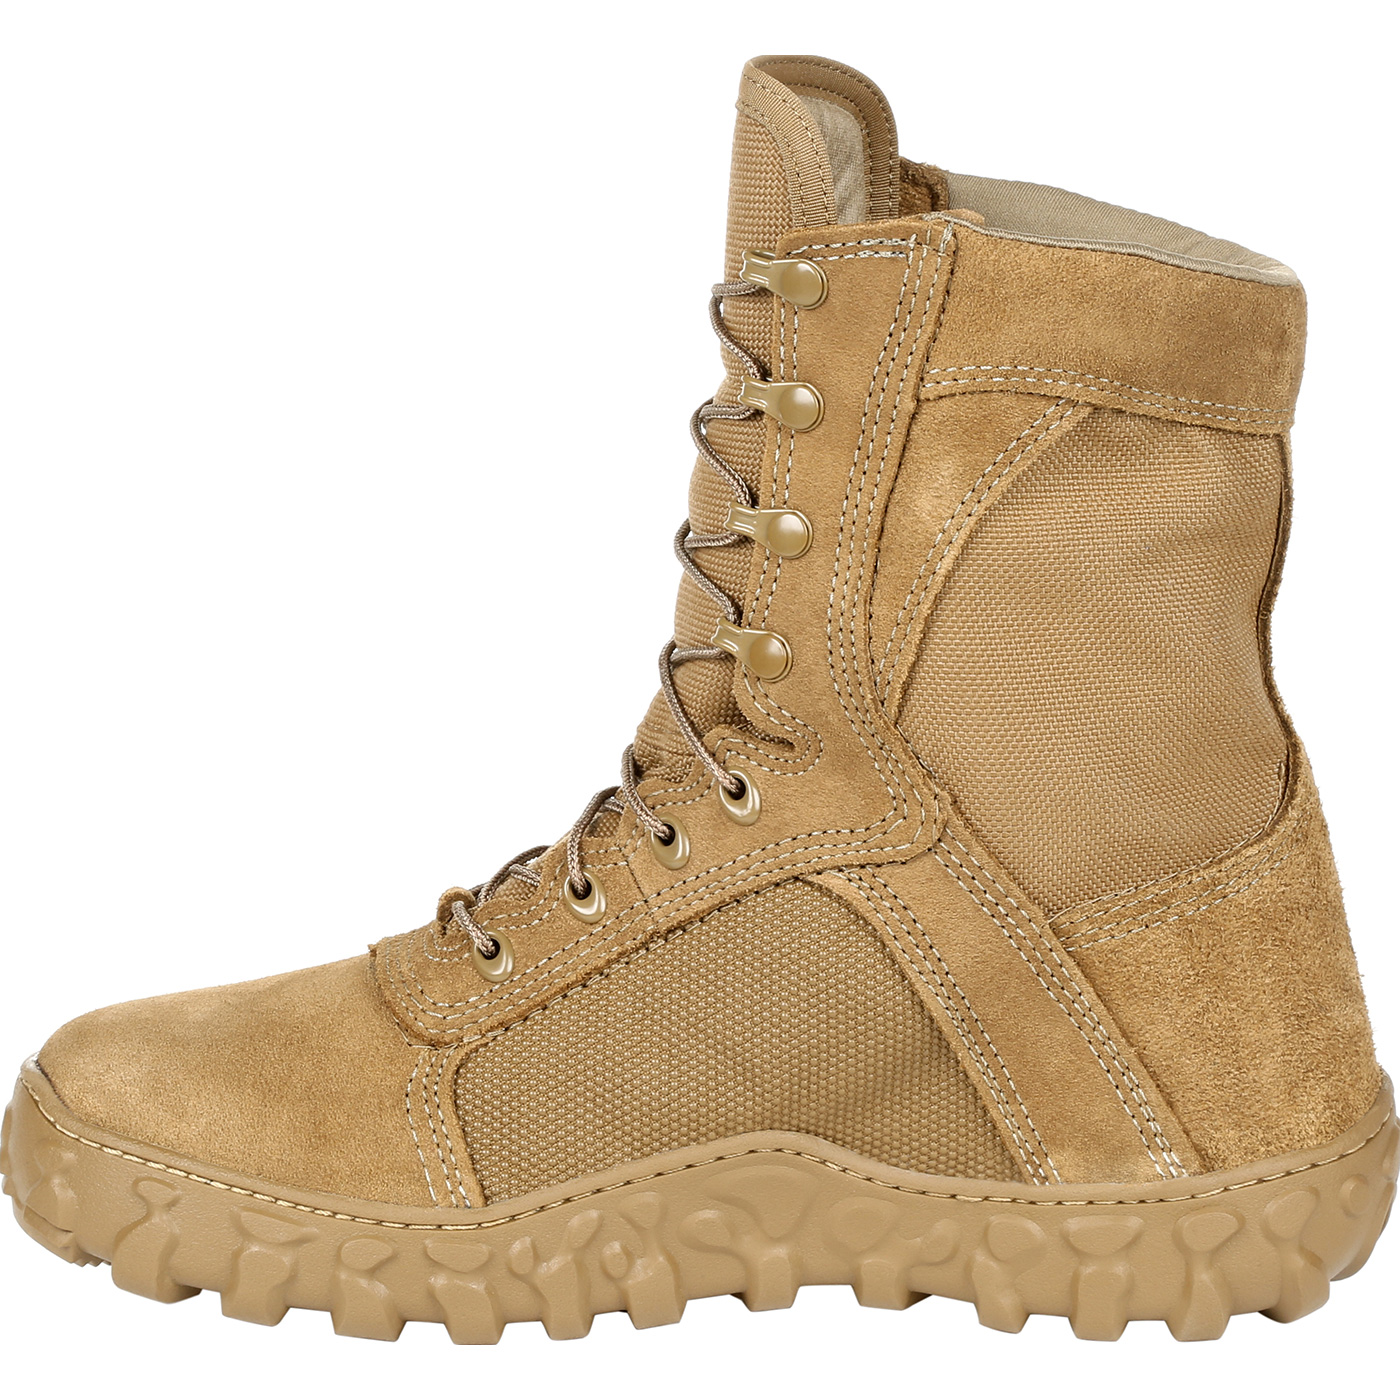 The Rocky S2V Military Boot is designed for the soldier looking for lightweight, quick-response military boot that has been top rated as one of the most comfortable boots on the market today. The S2V features a outsole design that wraps around the foot for an ultra low-profile. This makes the S2V an ideal boot for tactical environments that.